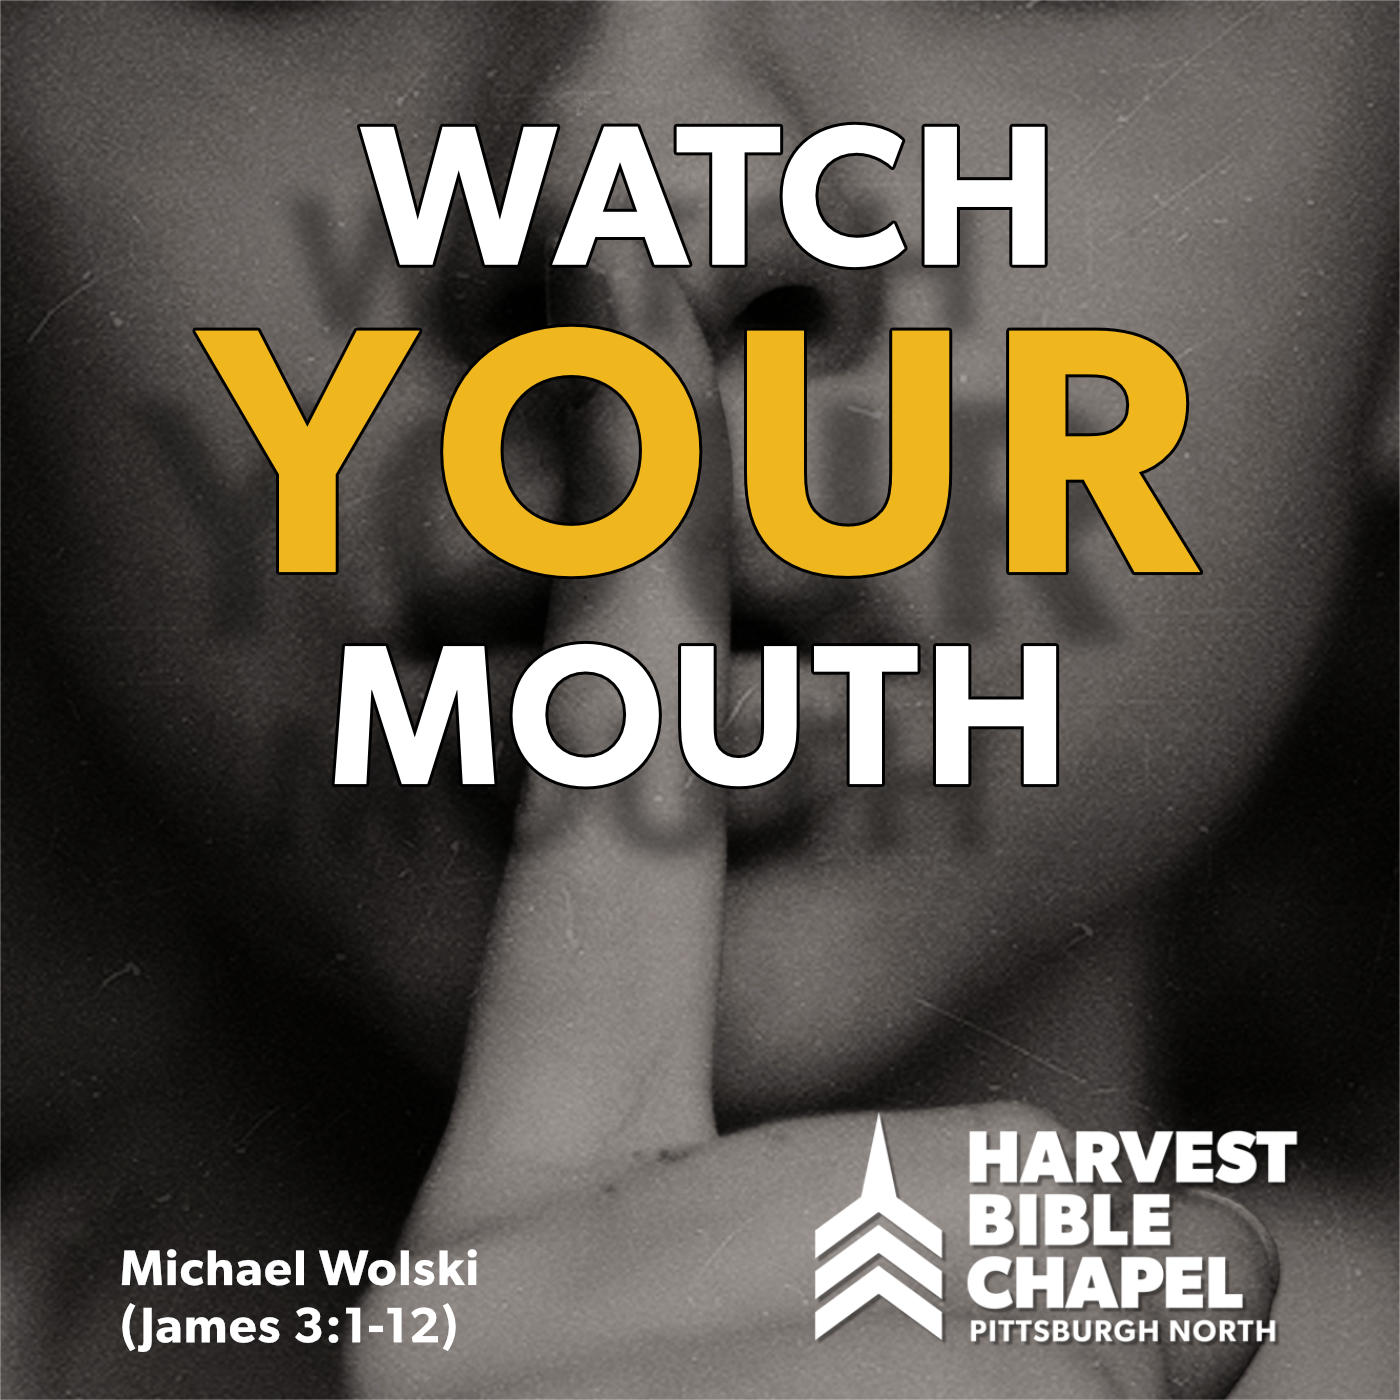 2019-JULY-GuestSpeakers-MikeWolski-WatchYourMouth.jpg